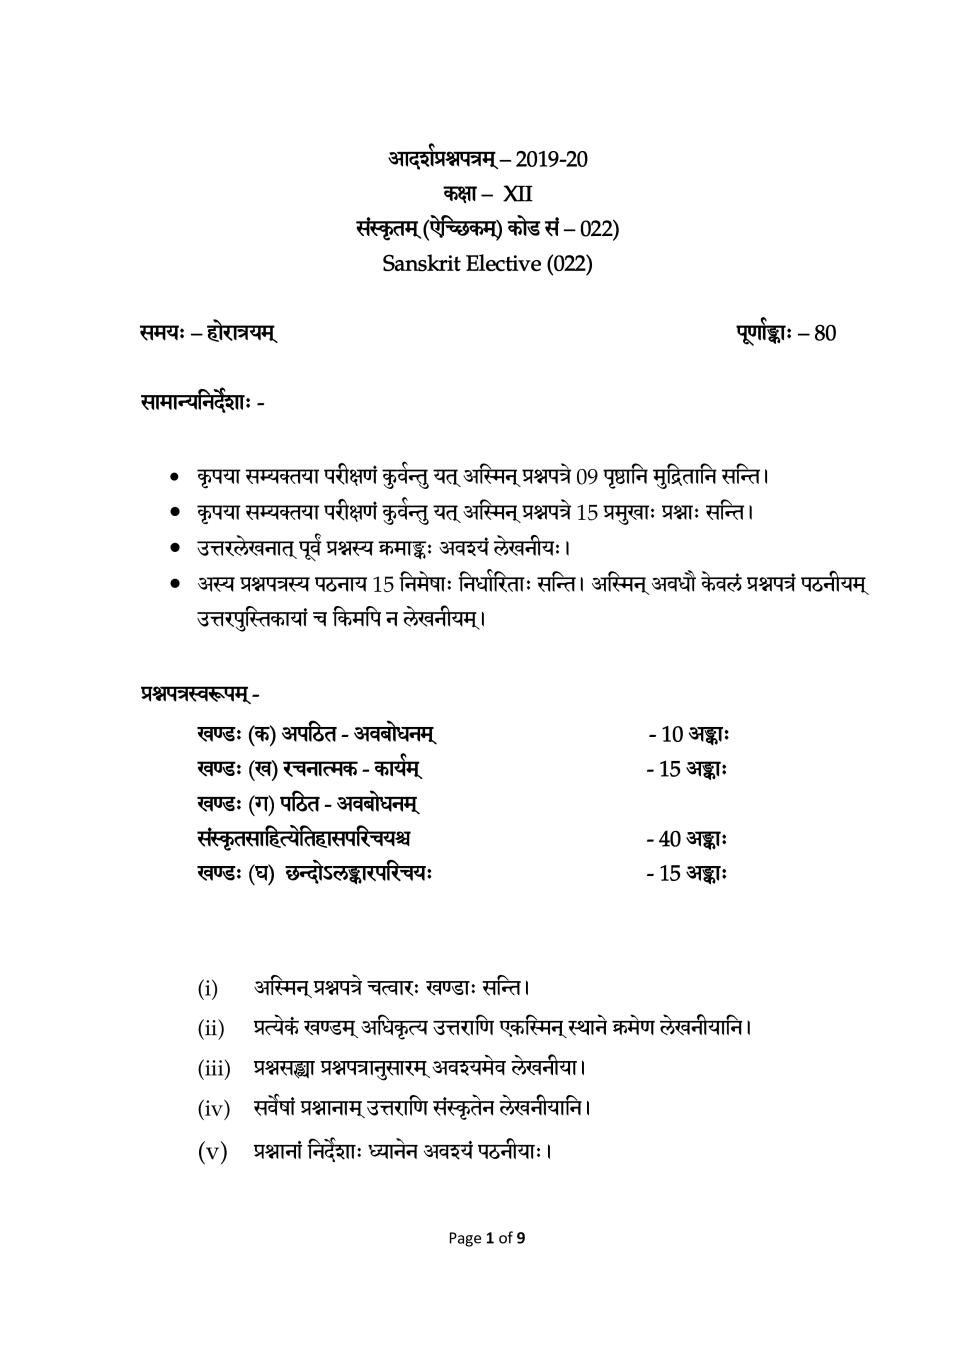 CBSE Sample Papers 2020 for Class 12 – Sanskrit (Elective)